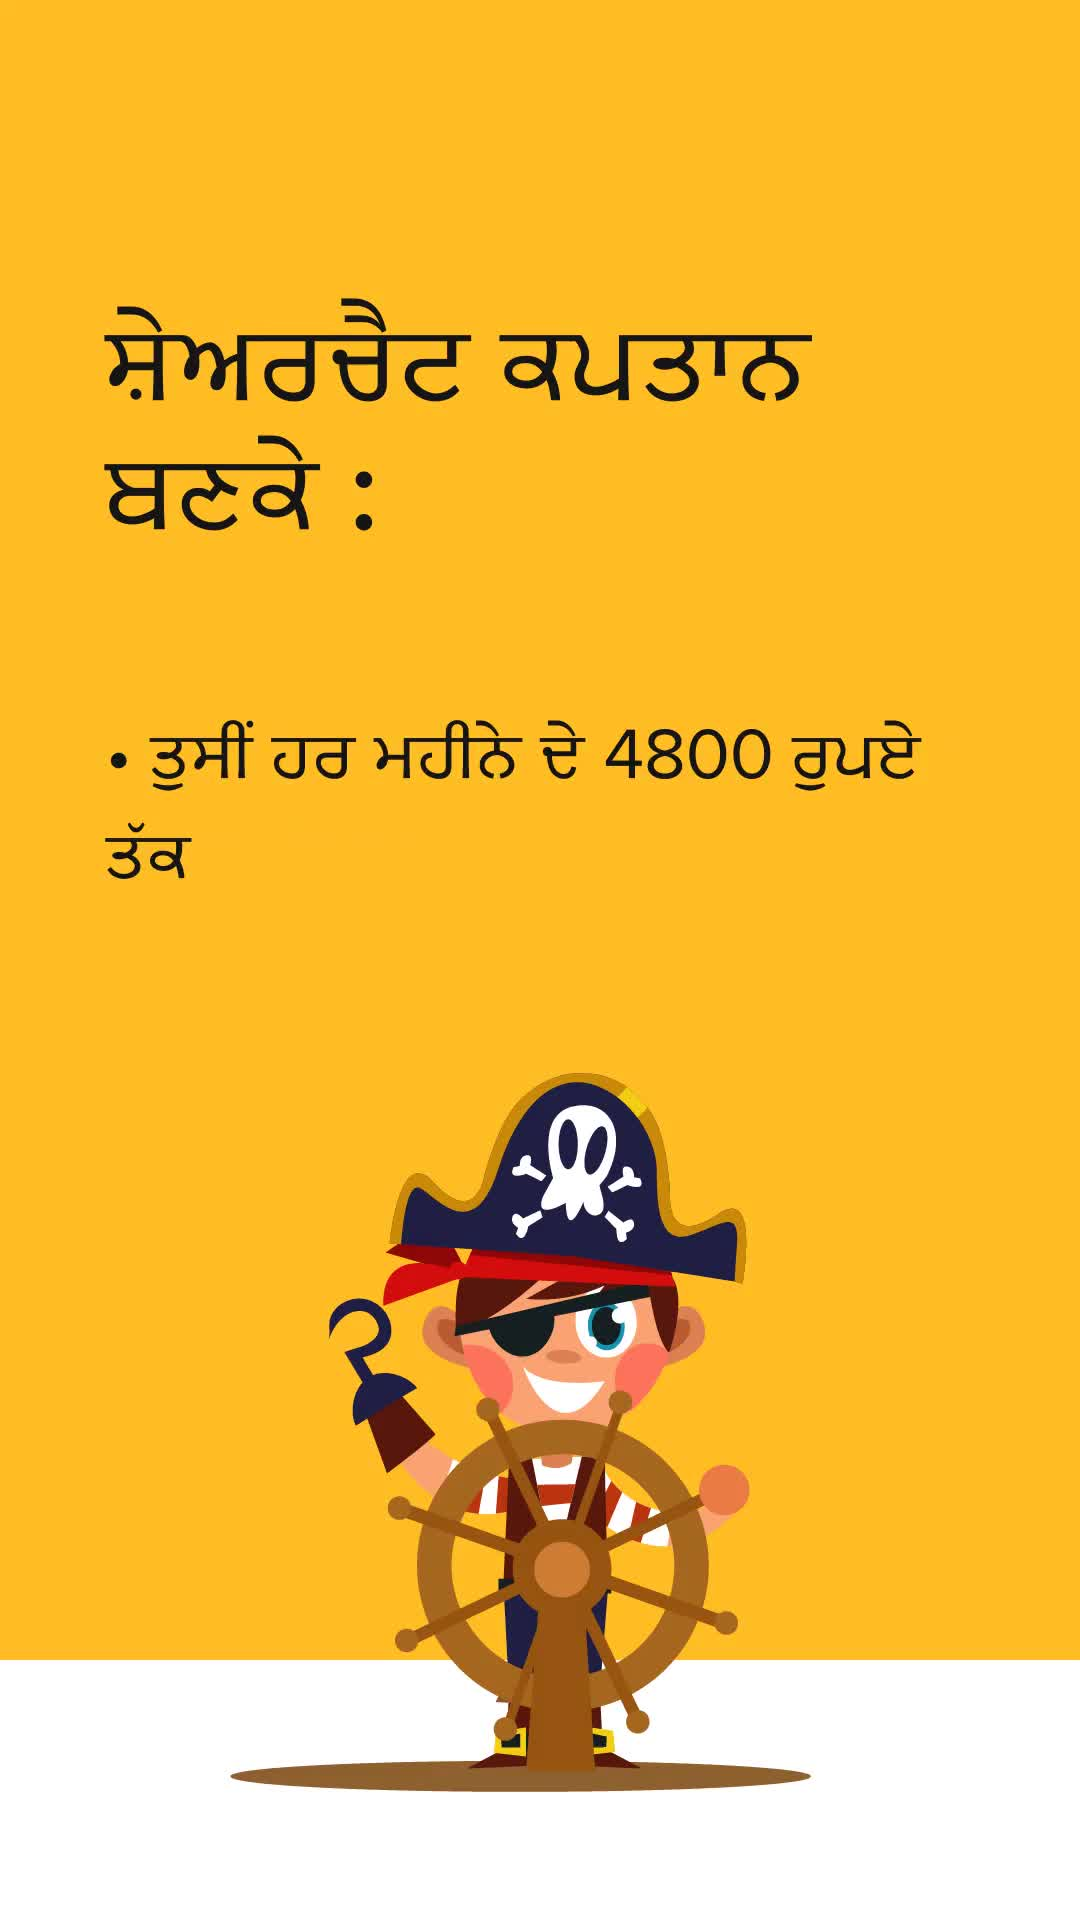 ✨ਮੈਂ ਹਾਂ Sharechat Captain ✨ - ShareChat